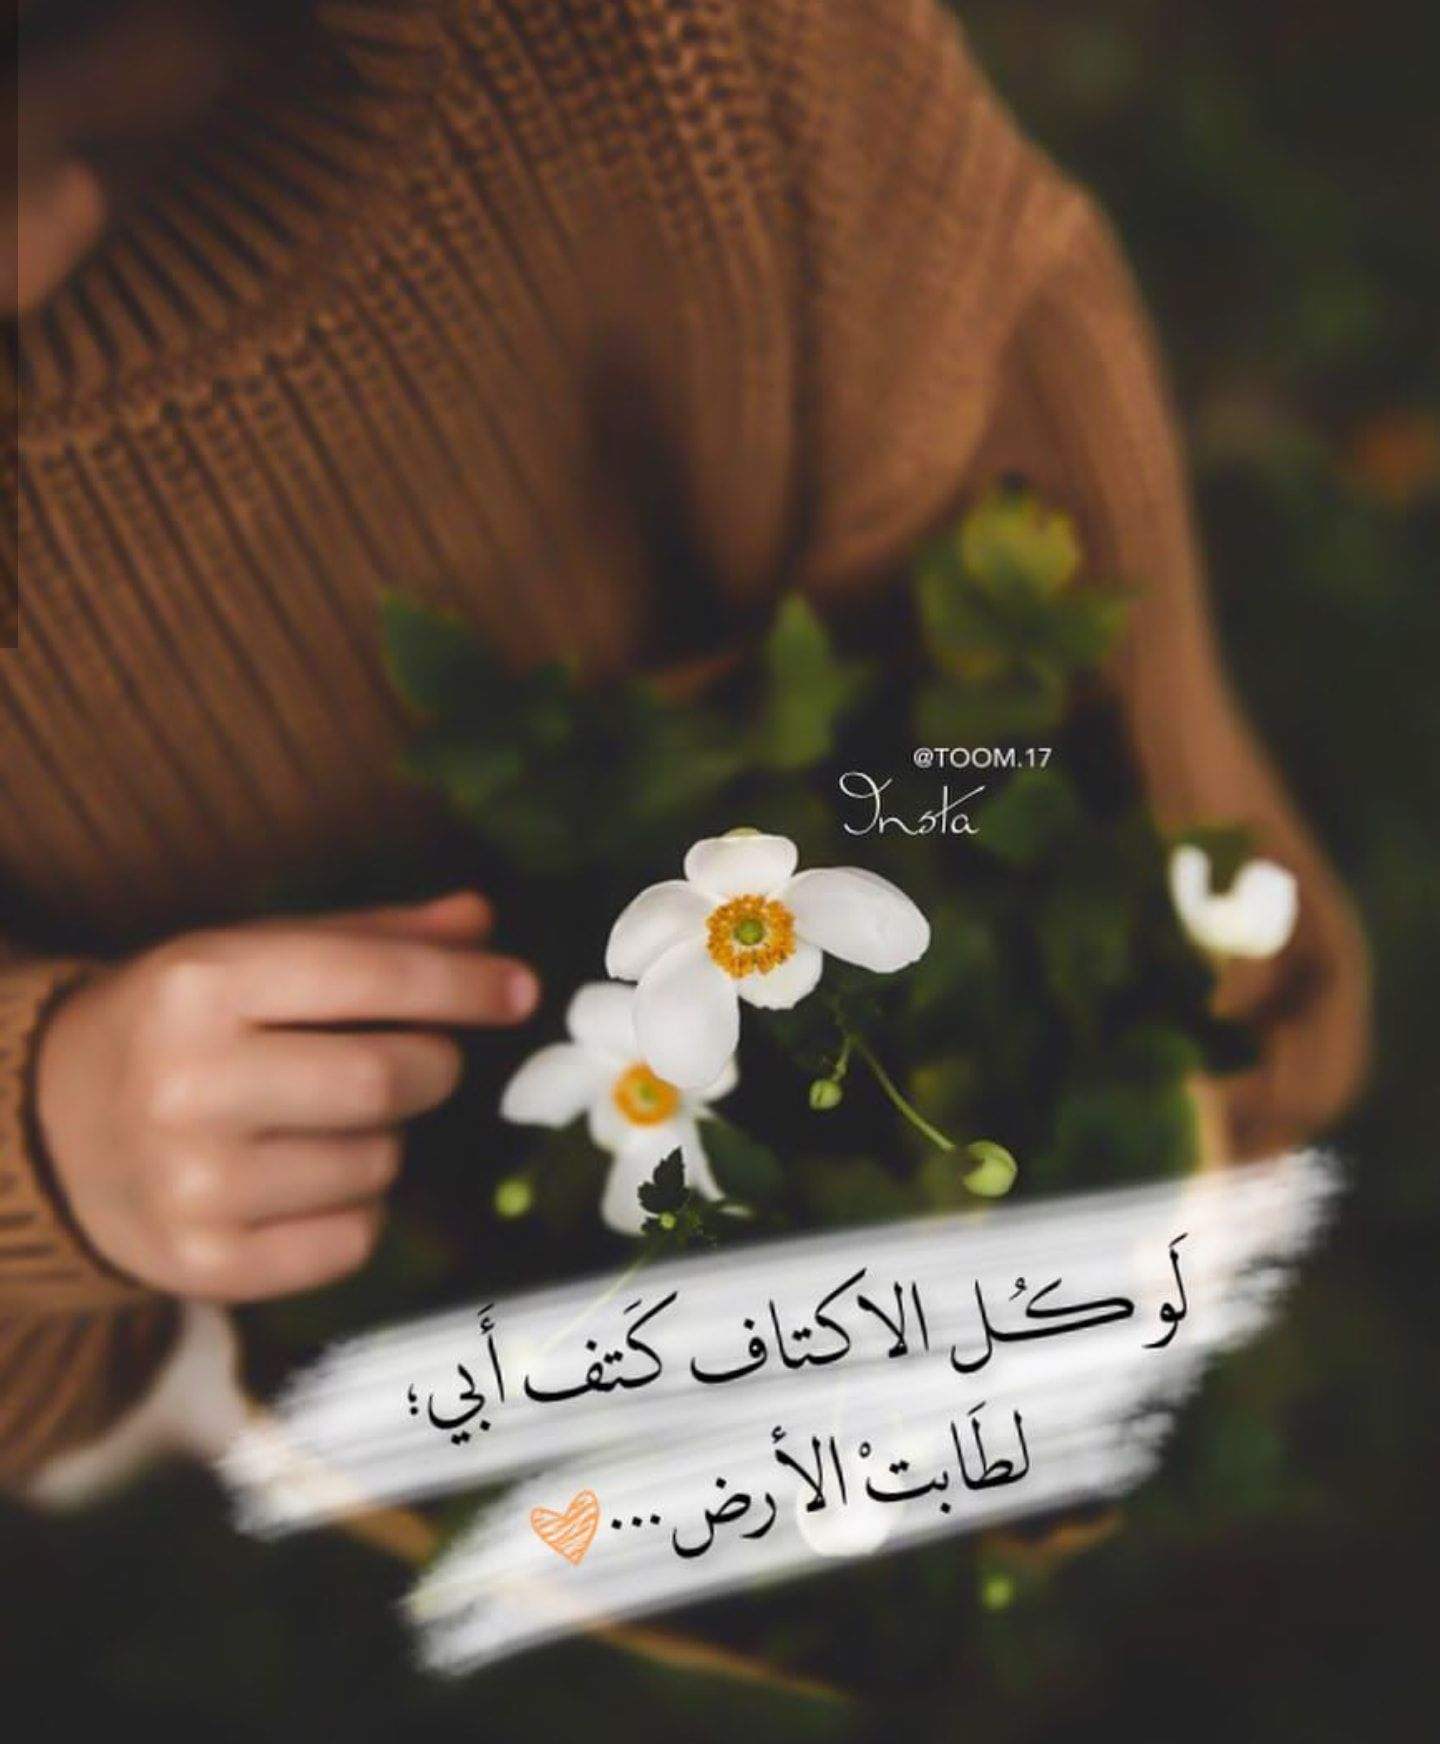 Pin By القيصر Abu Wesam On نعمه الاهل In 2021 Fun Quotes Funny Best Quotes Funny Quotes